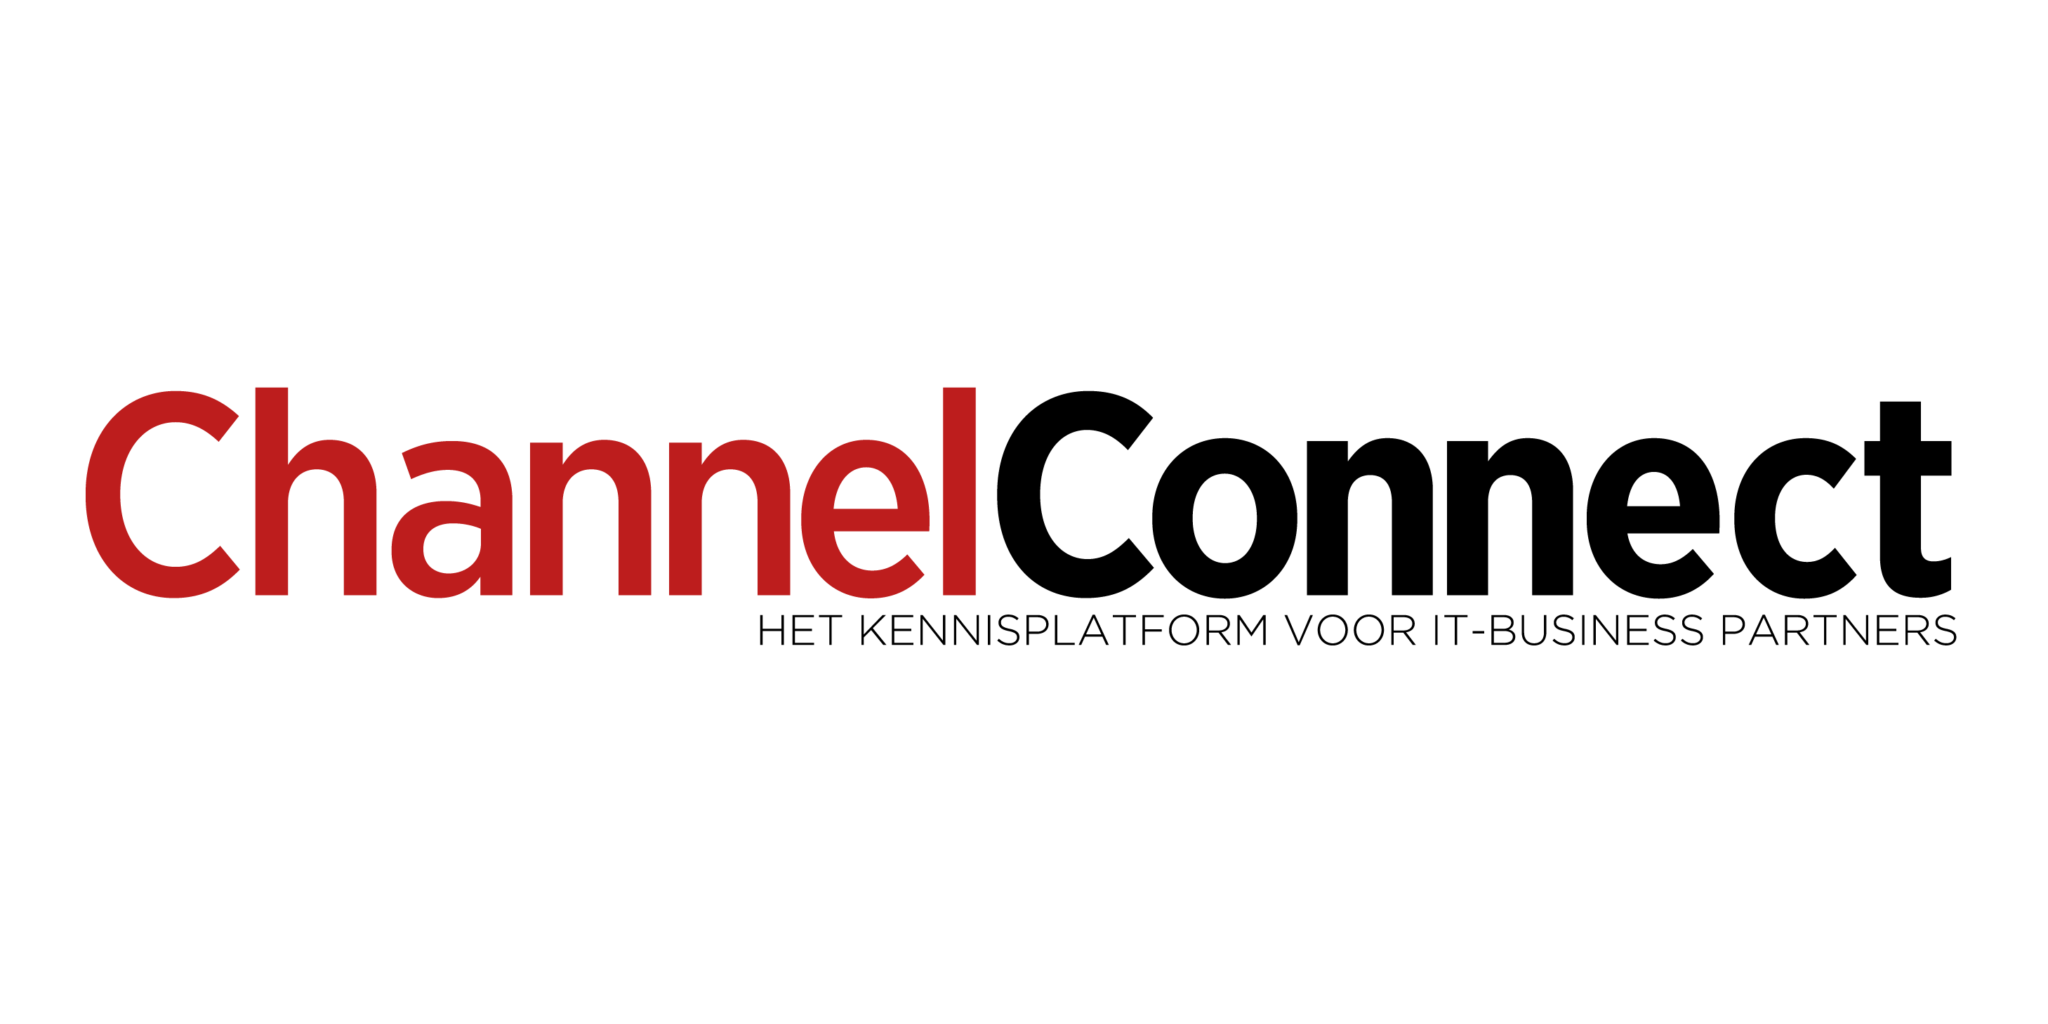 ChannelConnect